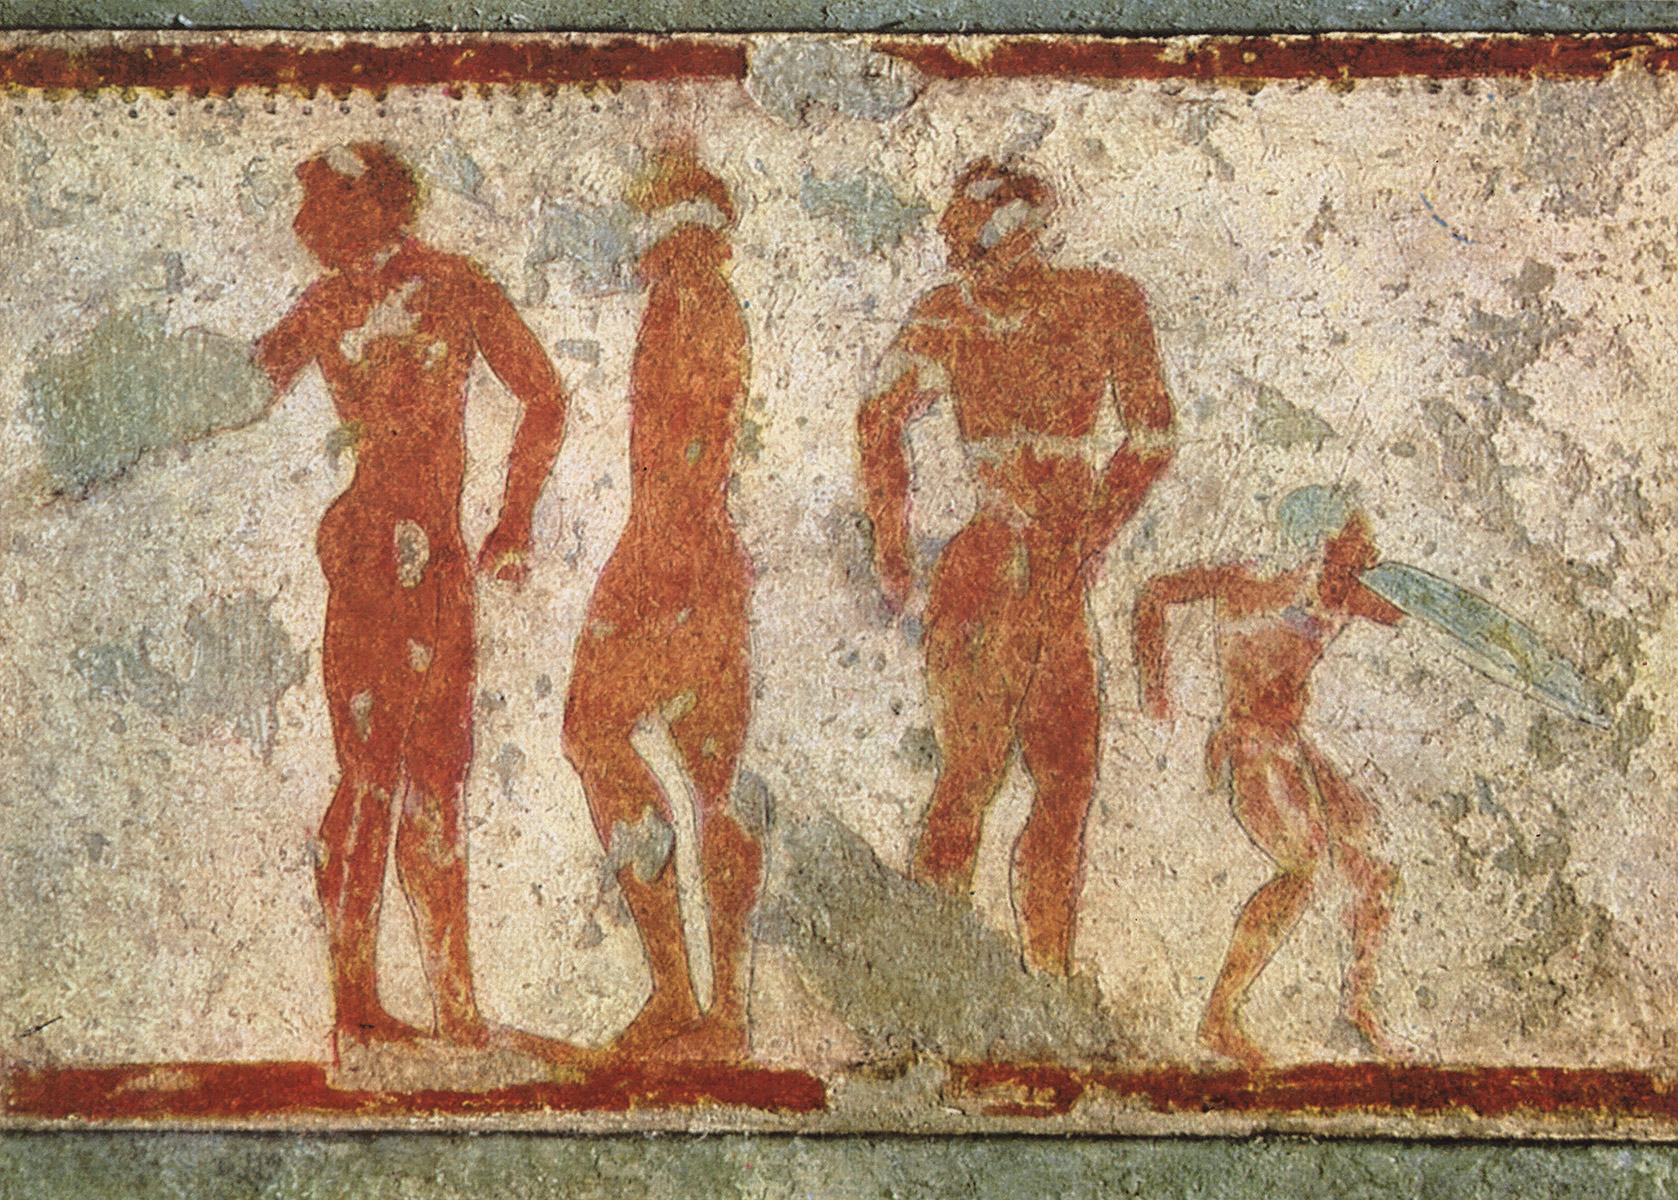 Athletes and dance warrior. 5th century BCE. Tarquinia, Tomb of the Chariots